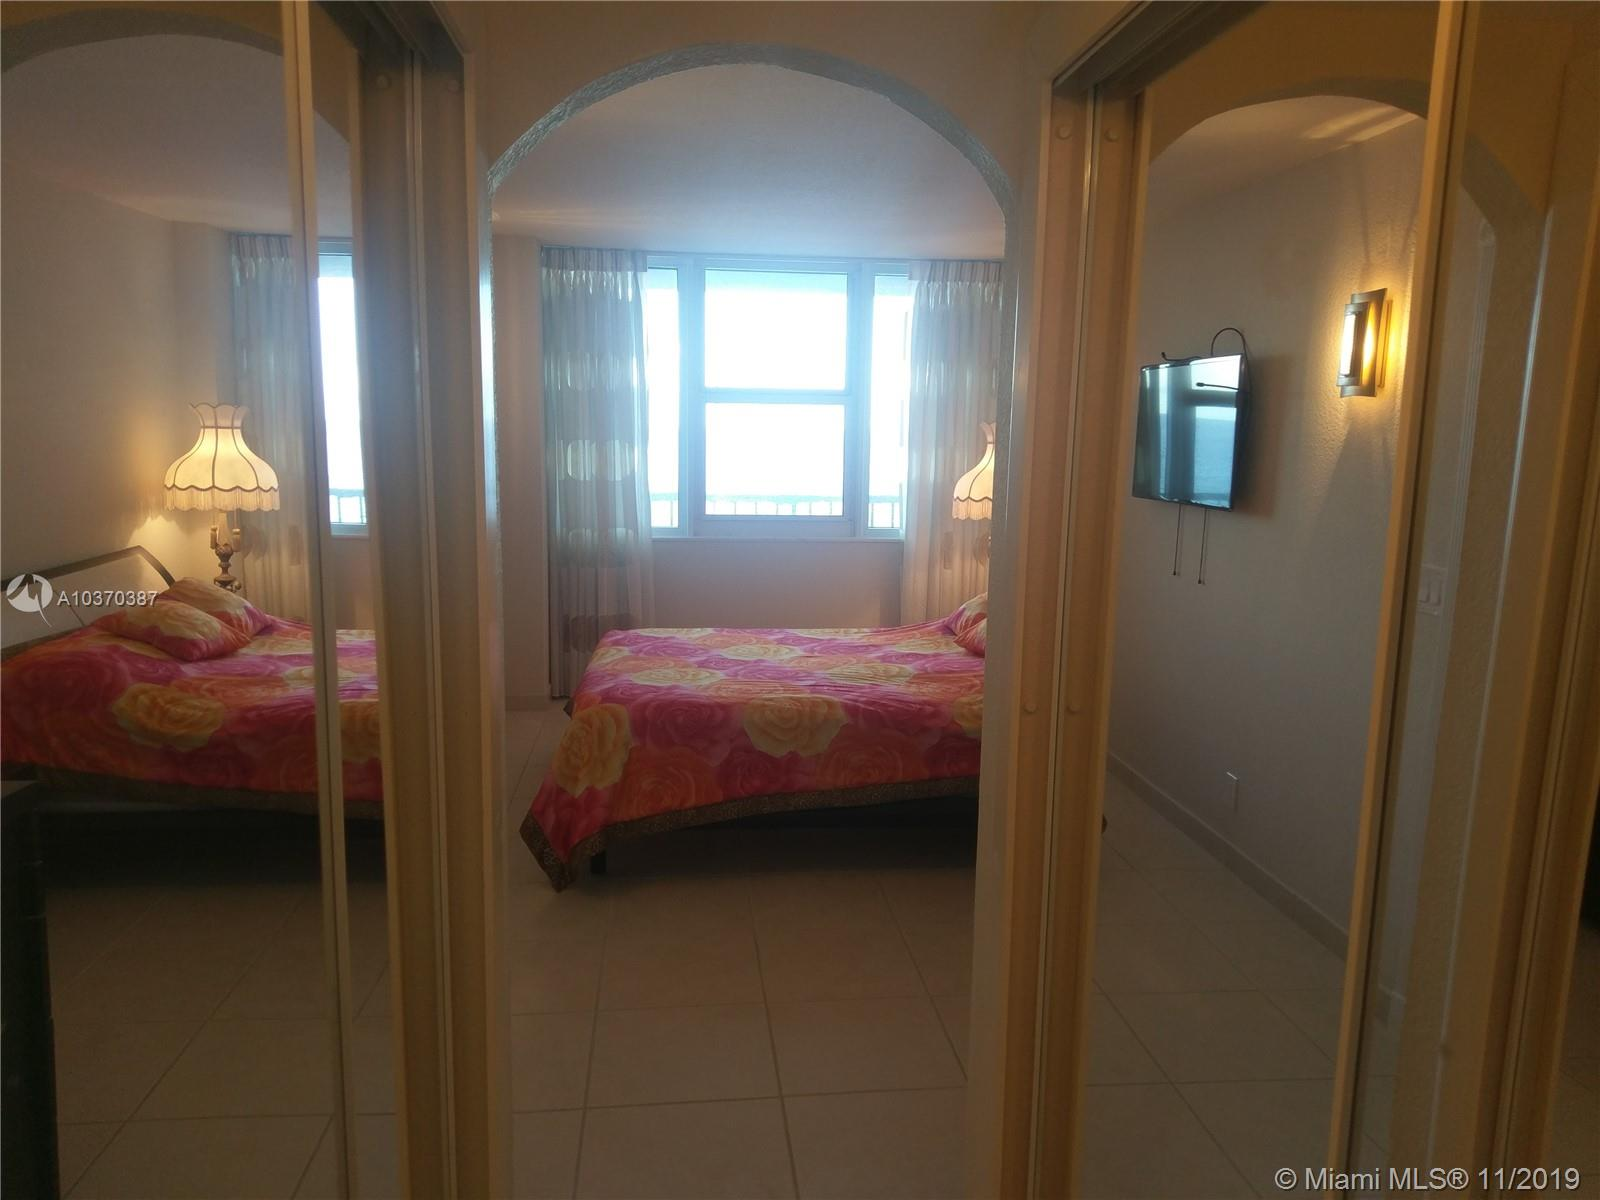 Photo of 2030 Ocean Dr #716, Hallandale, Florida, 33009 - MASTER BEDROOM SUITE WITH DRESSING AREA AND EUROPEAN BUILT IN CLOSET SYSTEMS